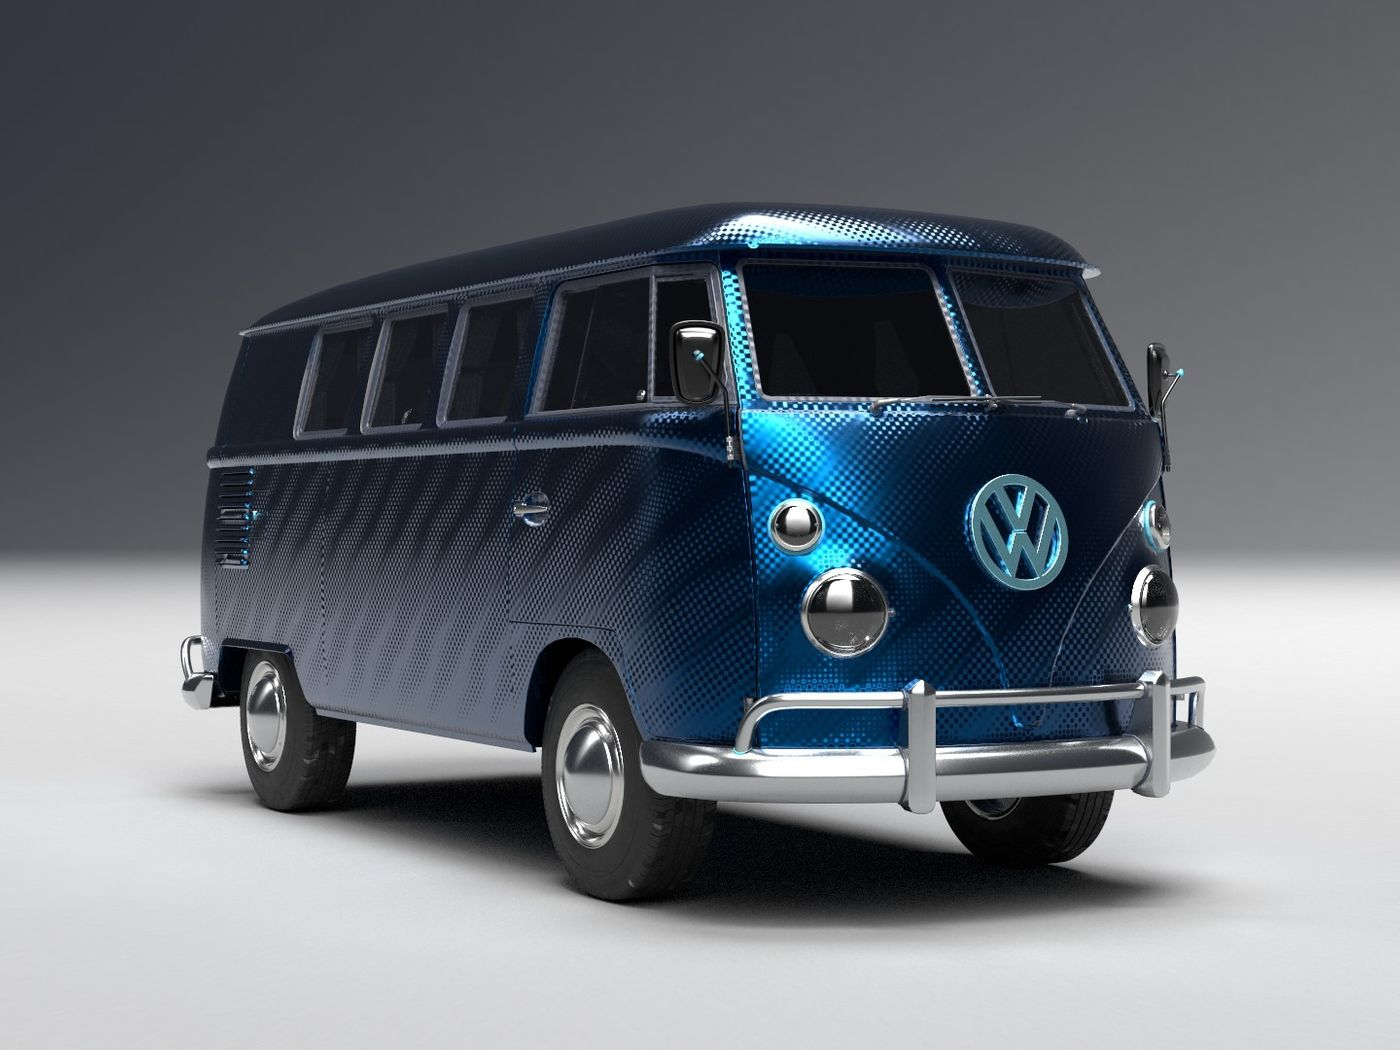 The Pantone color of the year 2020 Kombi Van